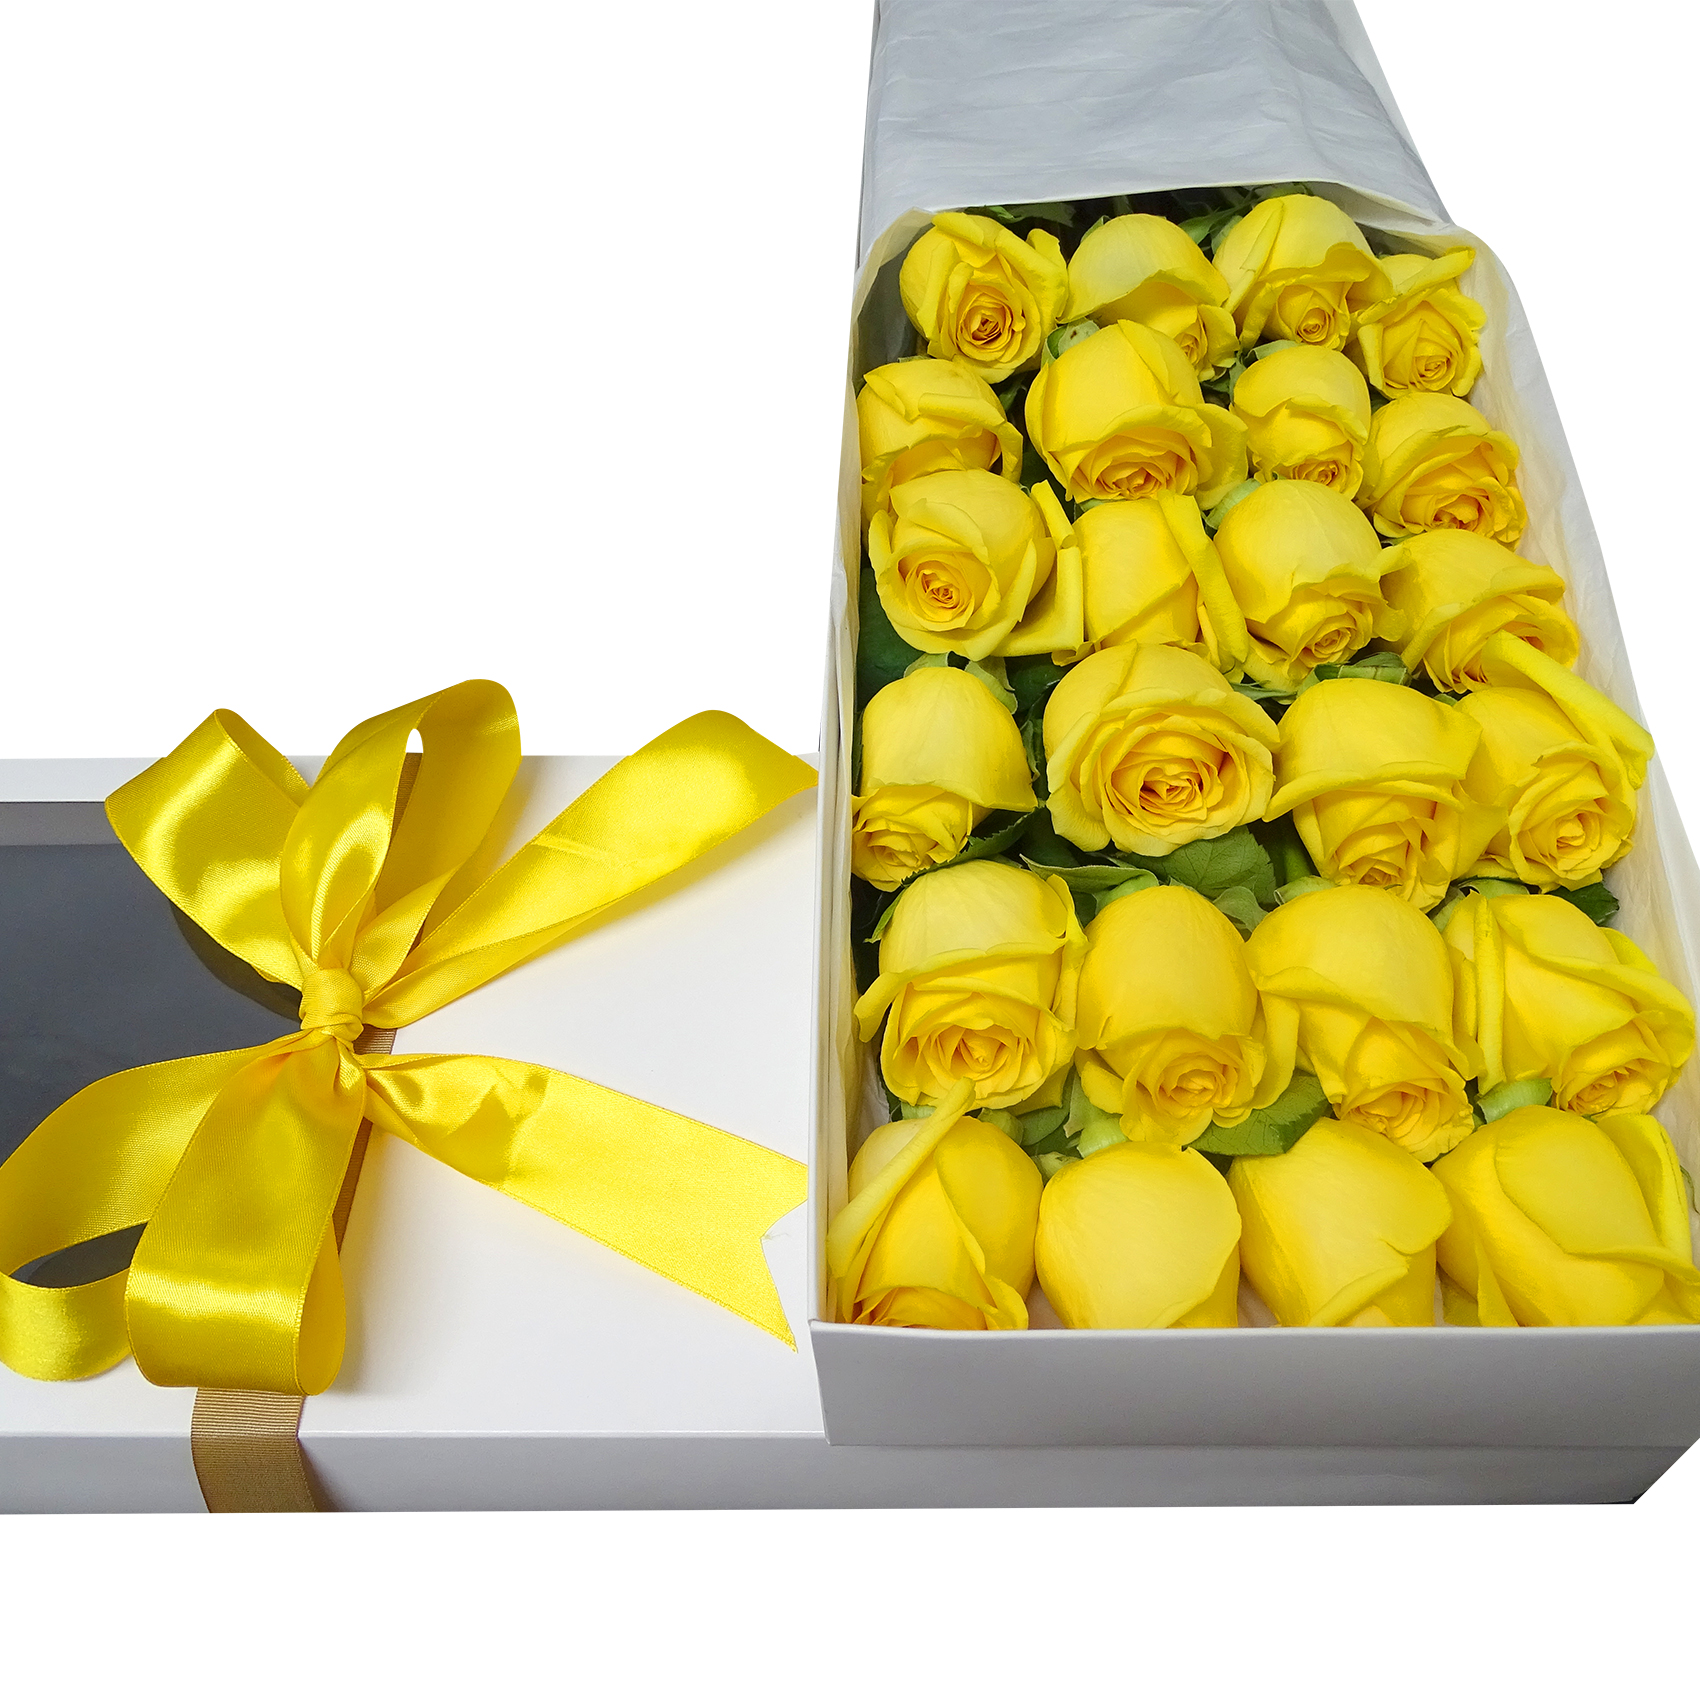 Caja de 24 bellas Rosas de color Amarillo